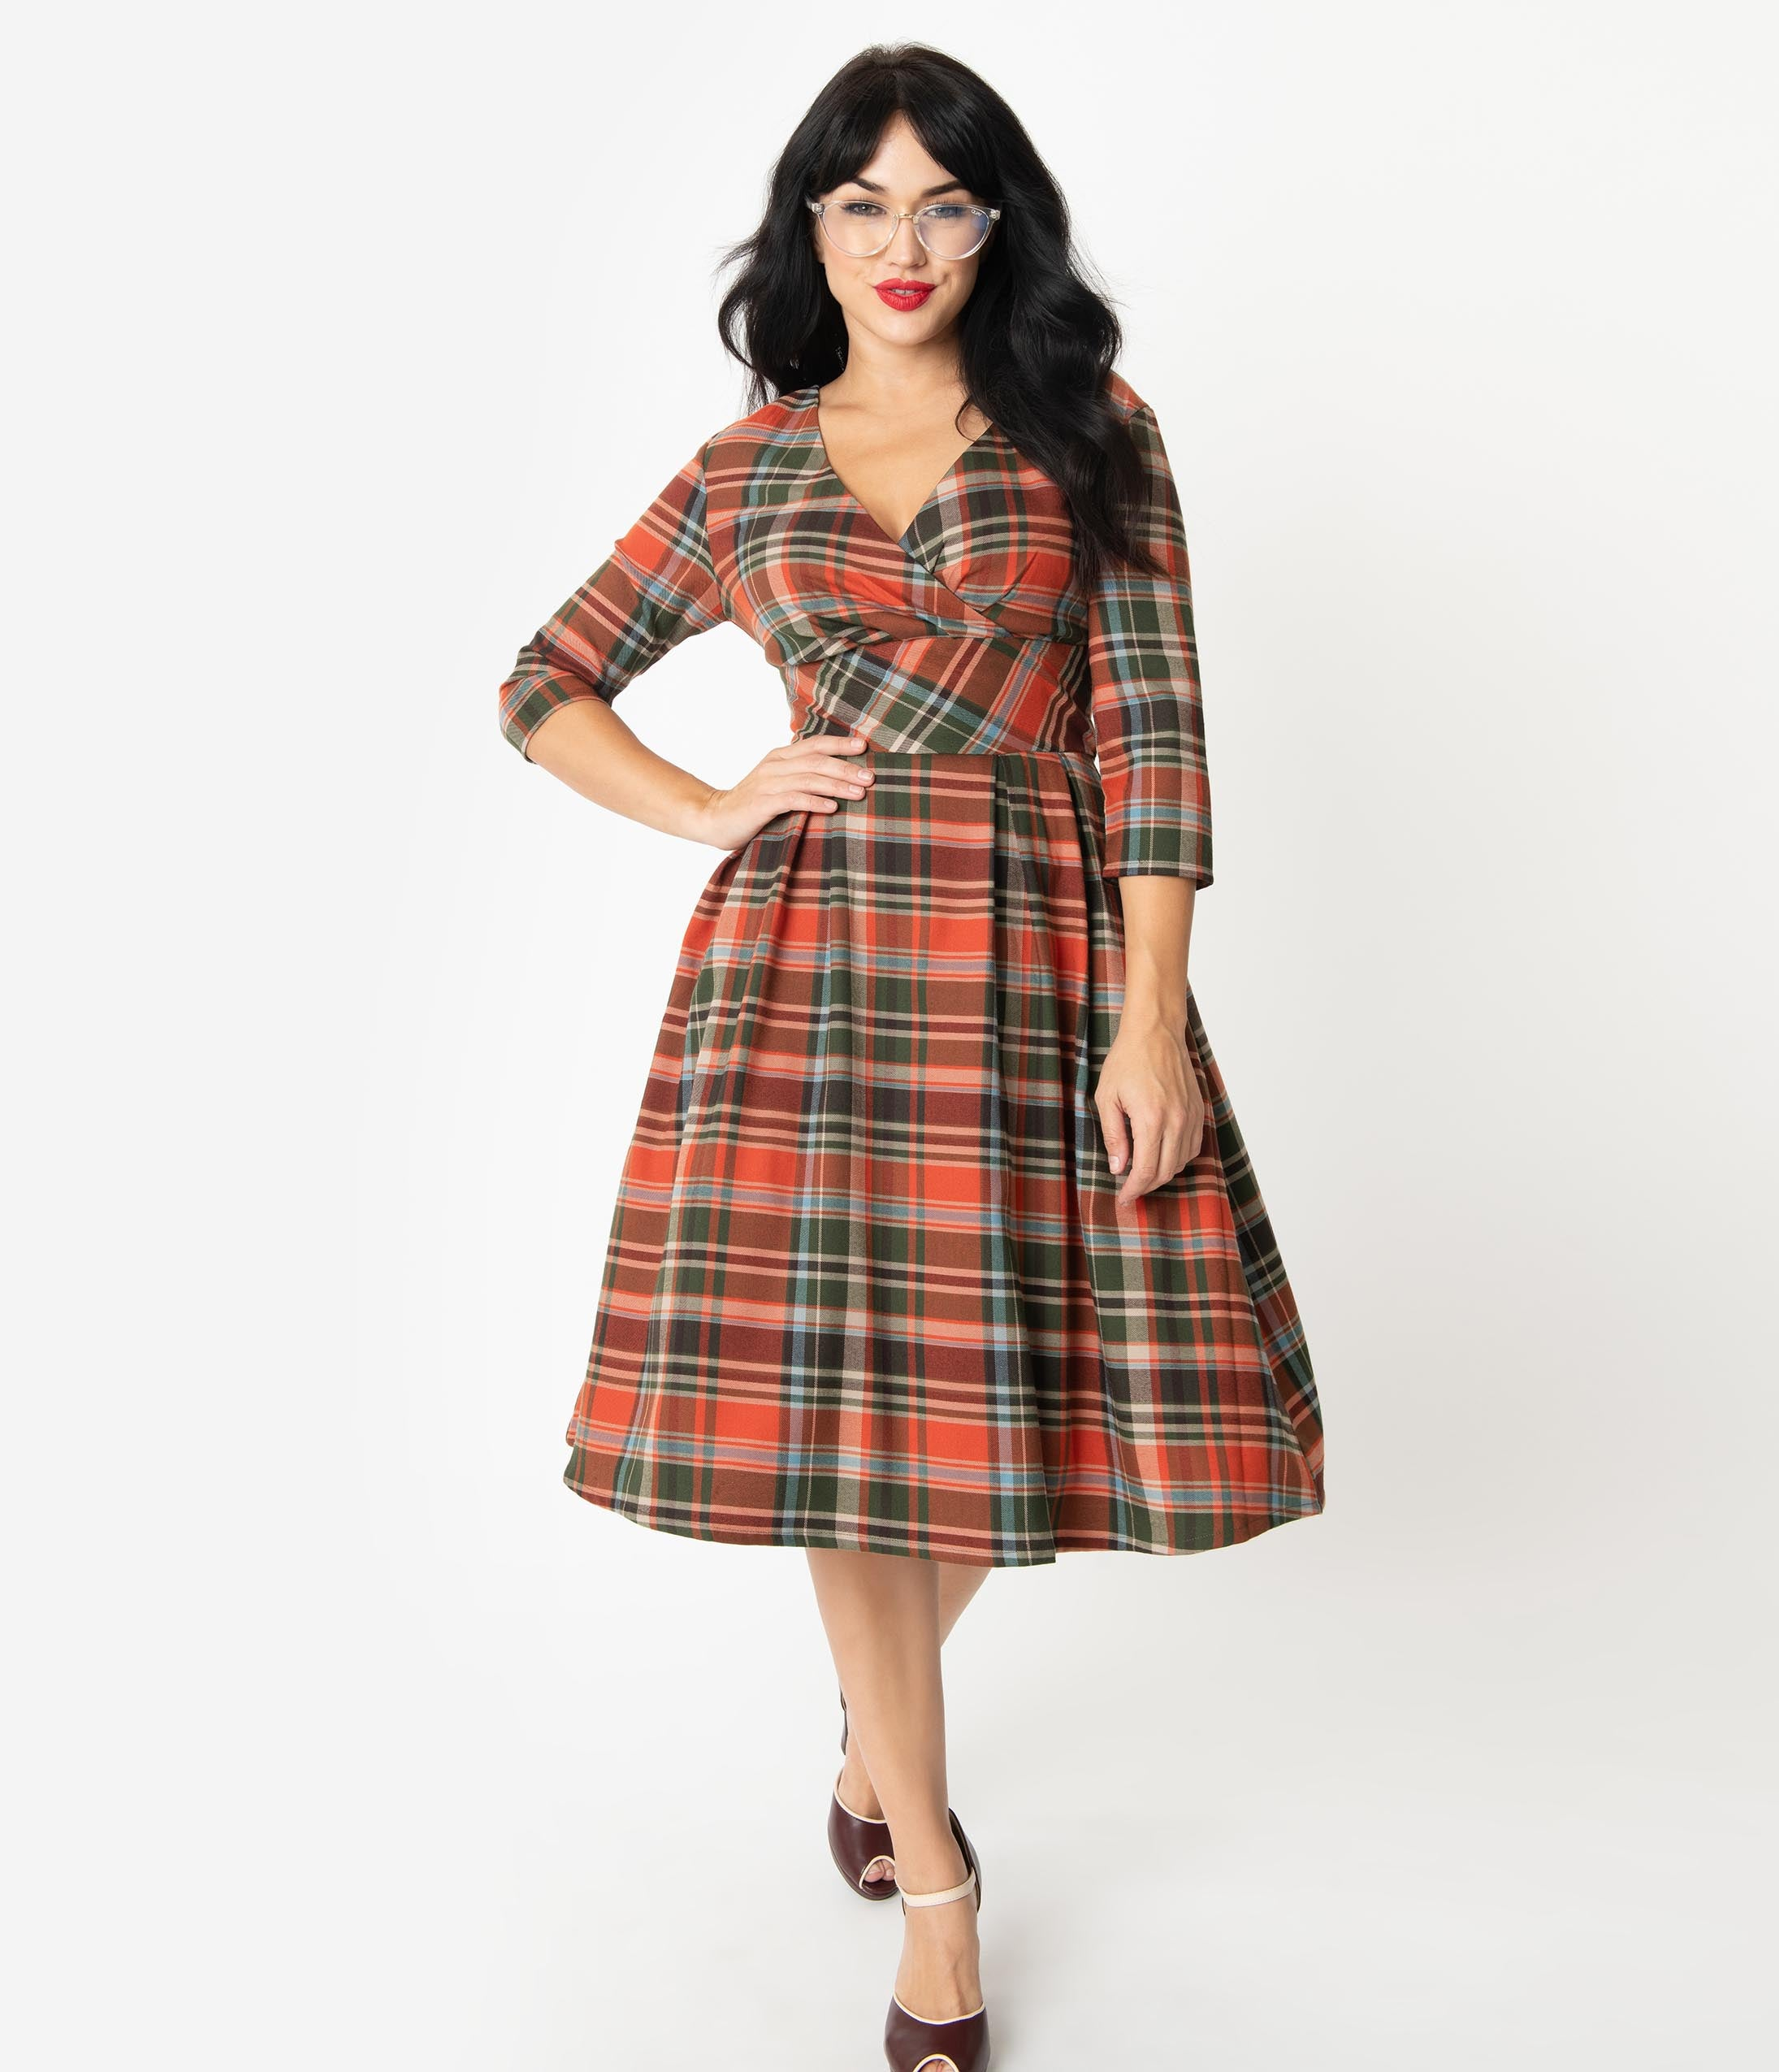 Fifties Dresses : 1950s Style Swing to Wiggle Dresses Hell Bunny 1950S Style Orange  Green Plaid Oktober Swing Dress $102.00 AT vintagedancer.com